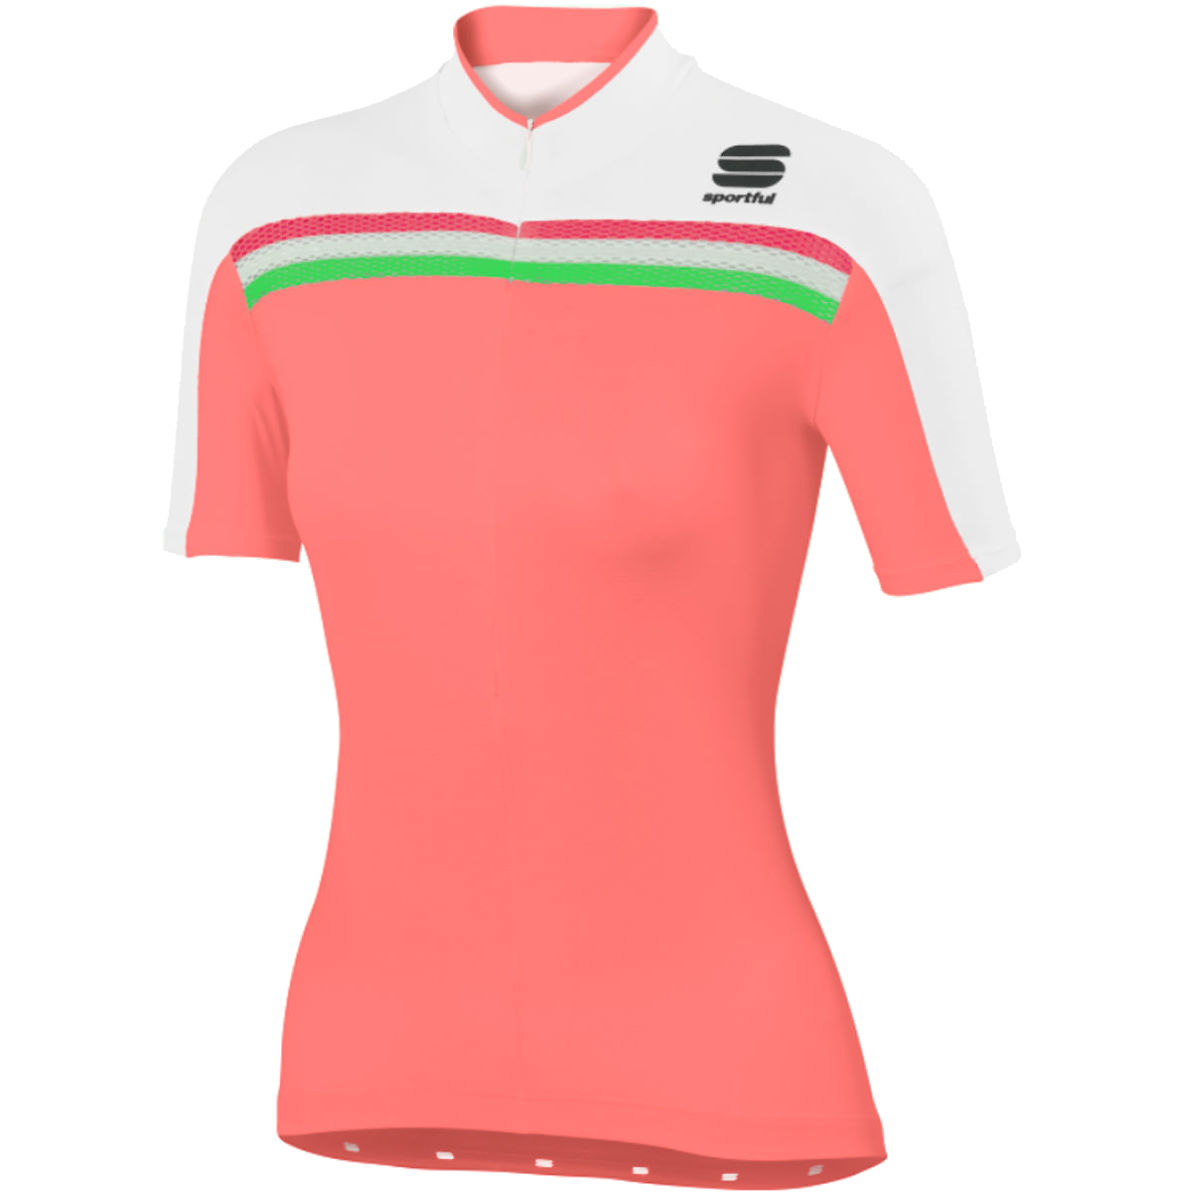 Maillot Femme Sportful Allure (PE16) - M Coral Maillots